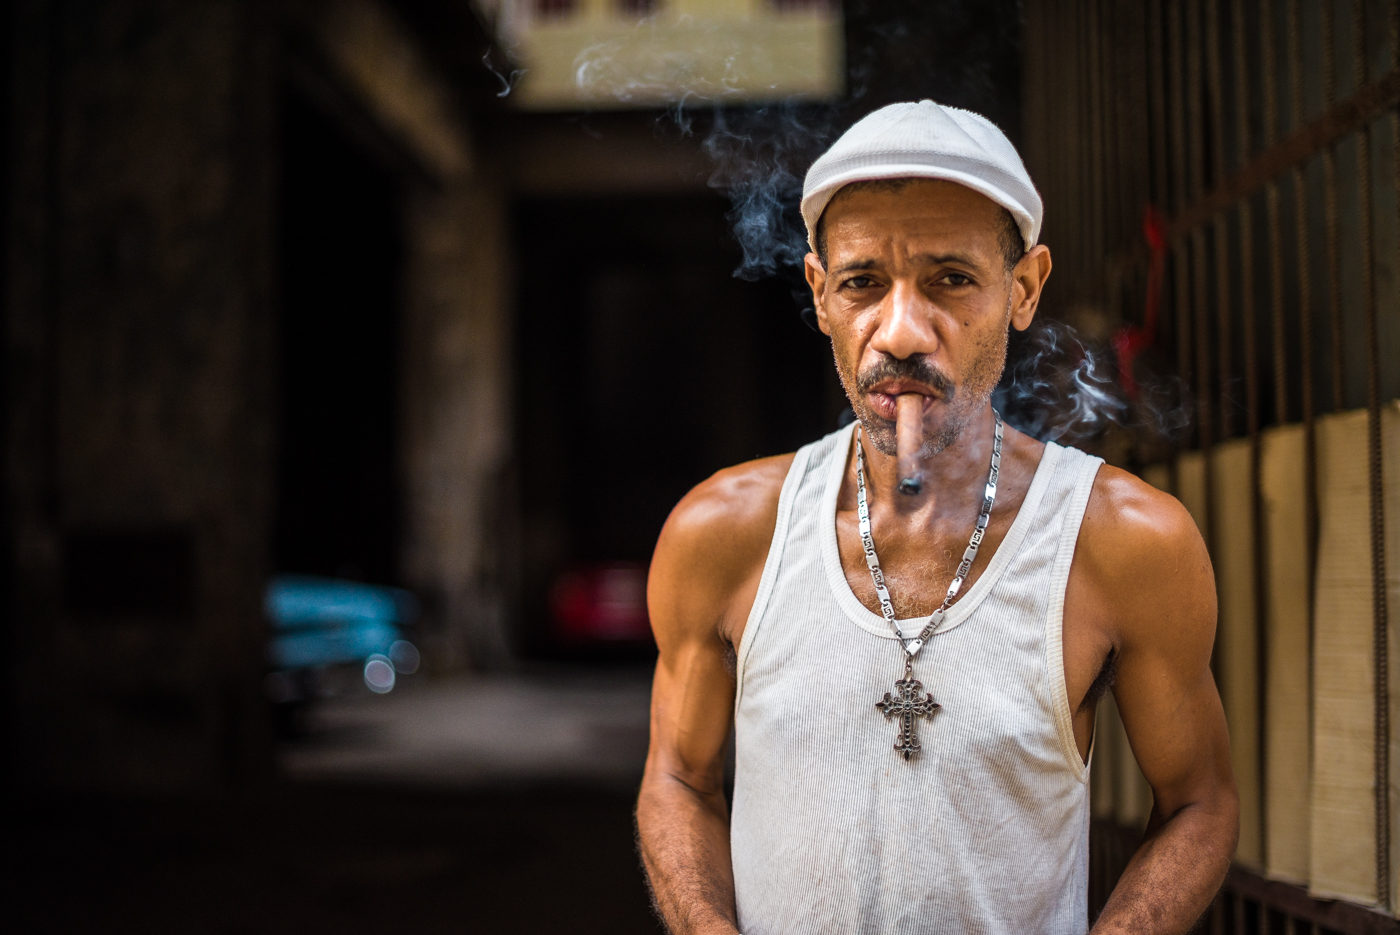 This gentleman was enjoying  a cigar outside of his parking garage.  Taxi drivers in Old Havana park their American classics, Like the Chevy Bel-Air in the background, in private garages like this one.